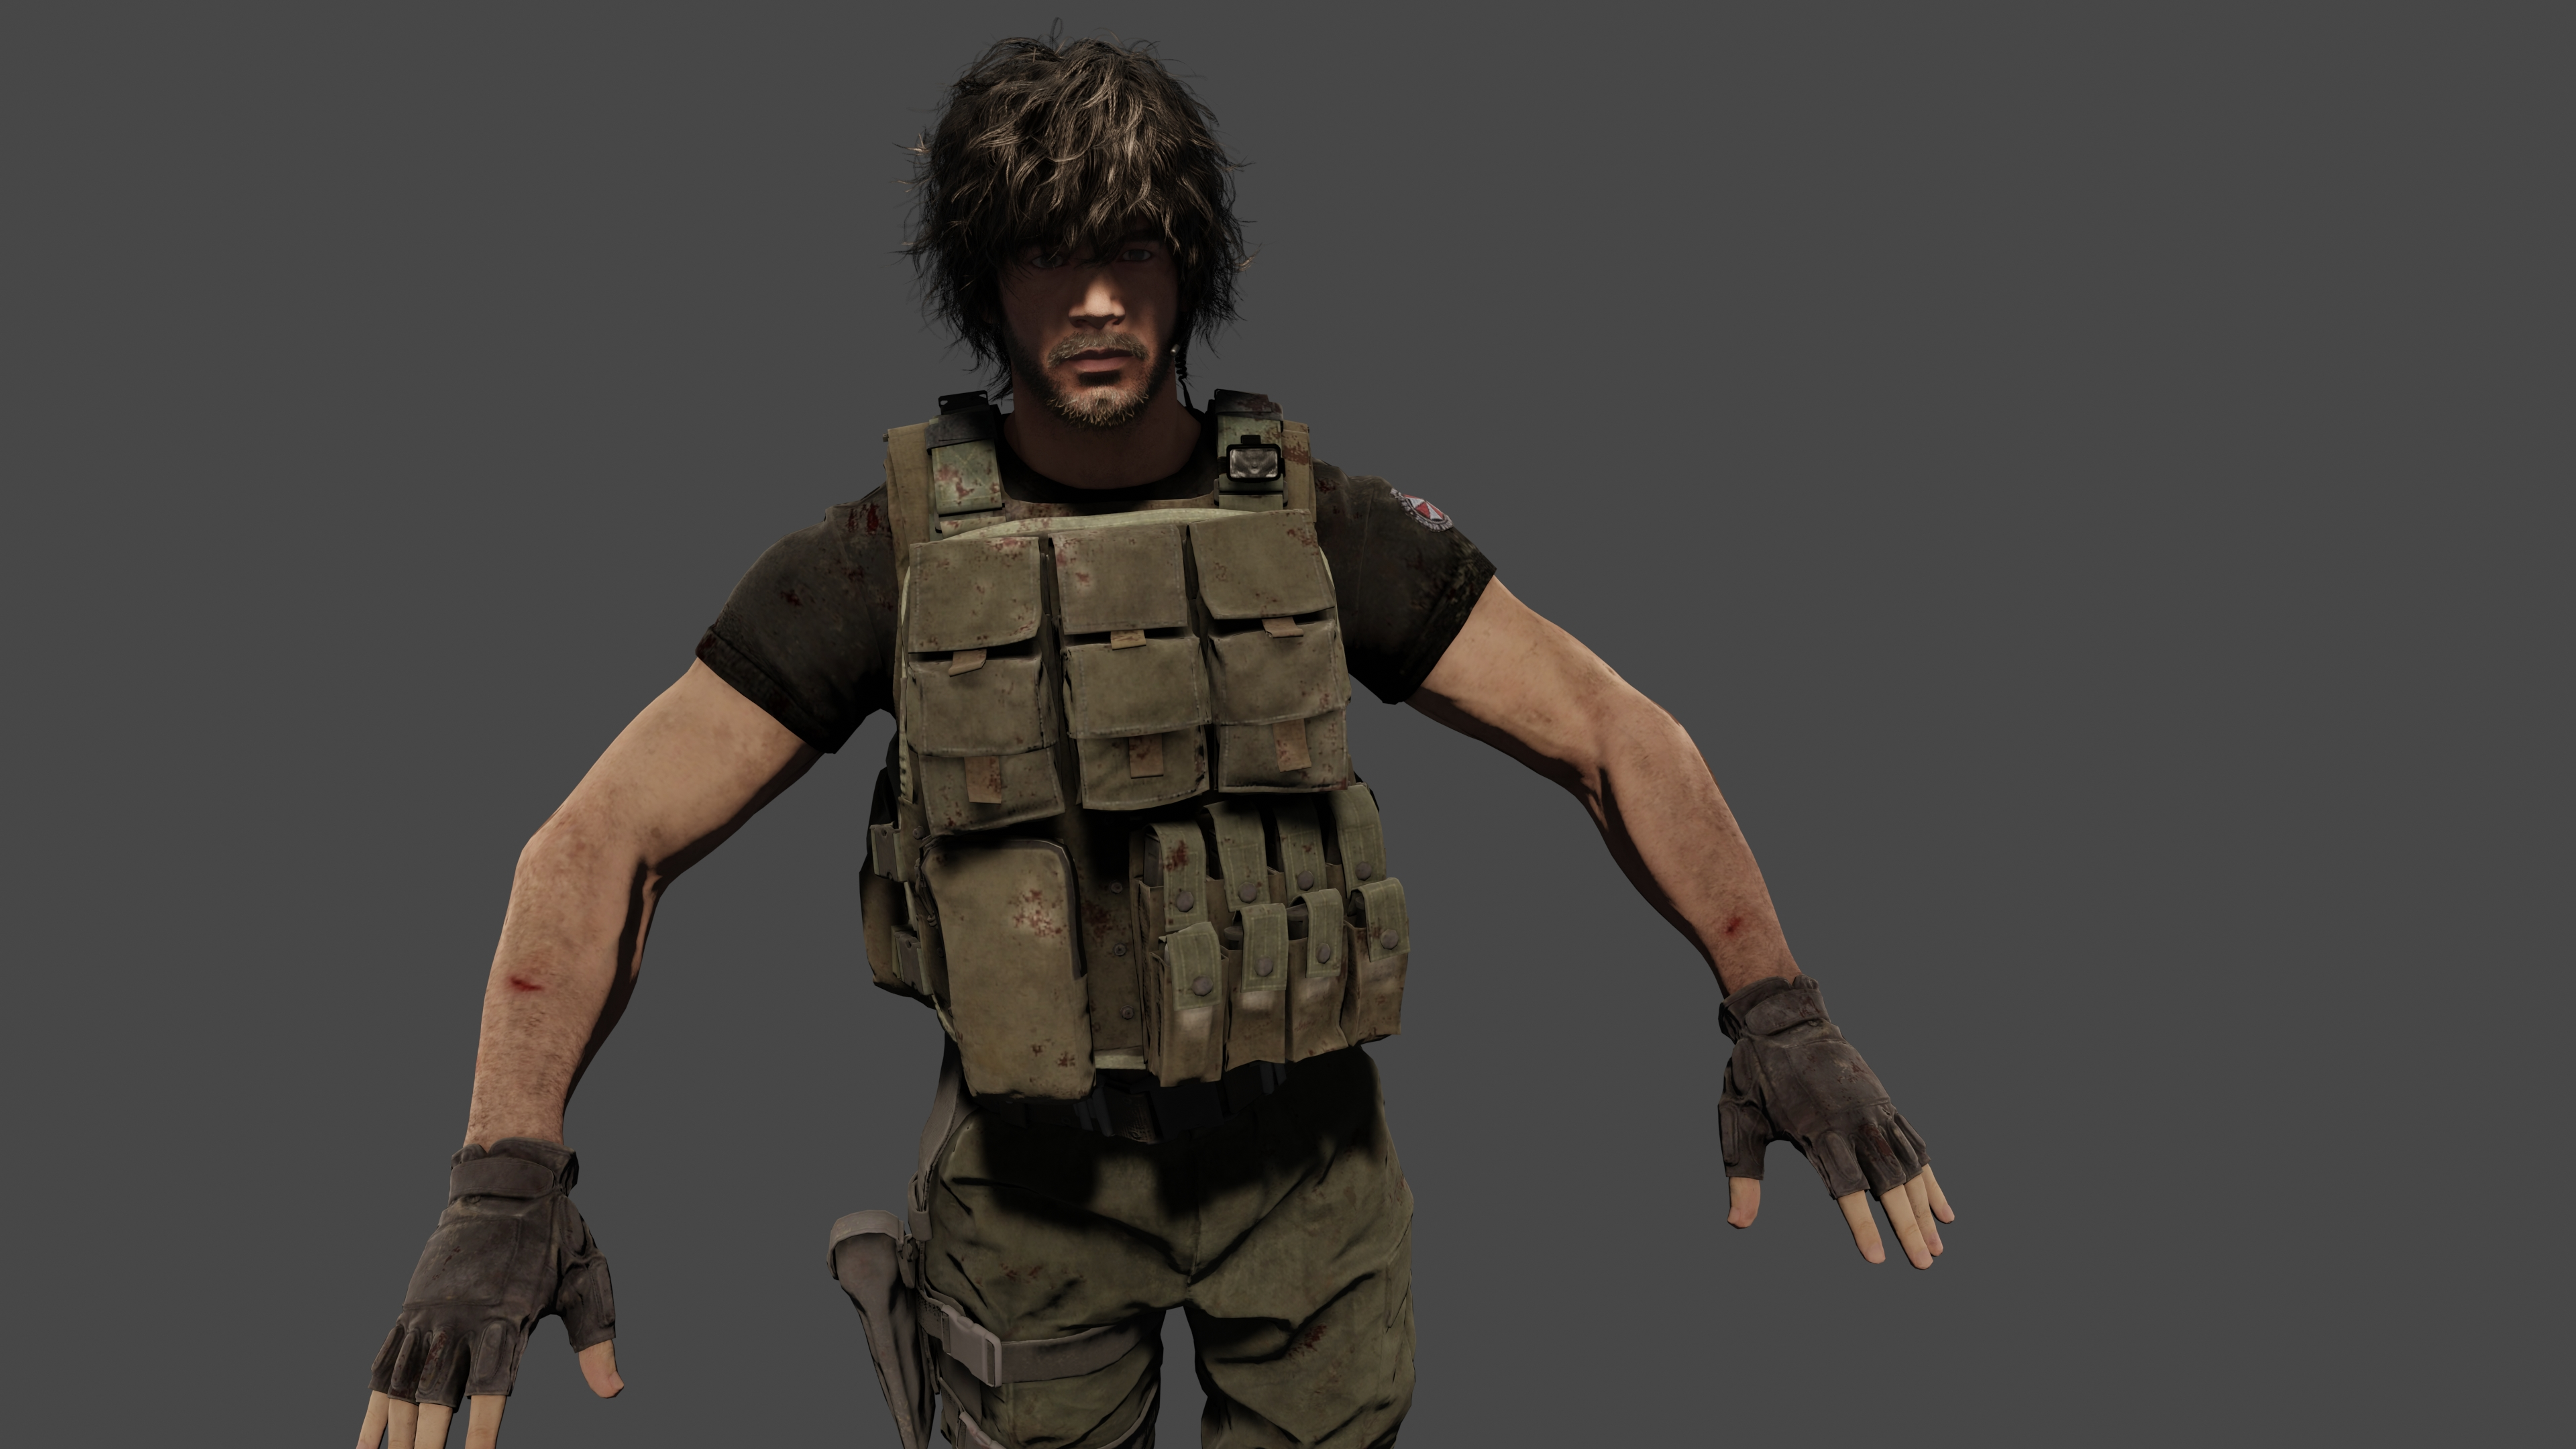 Resident Evil 3 Remake Carlos Oliveira 3d Model By Mattcroft008 On